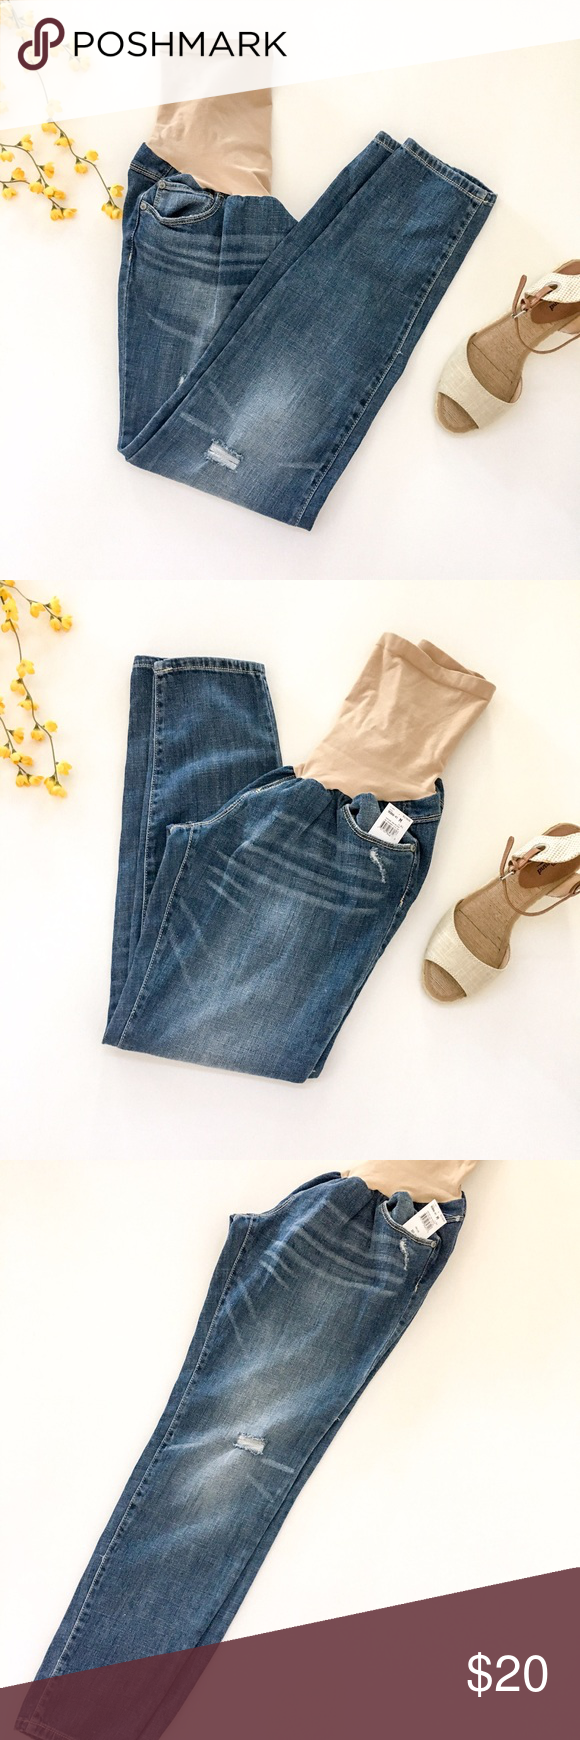 ⚡️FLASH SALE⚡️Distressed Maternity Jeans NWT | Shopping ...